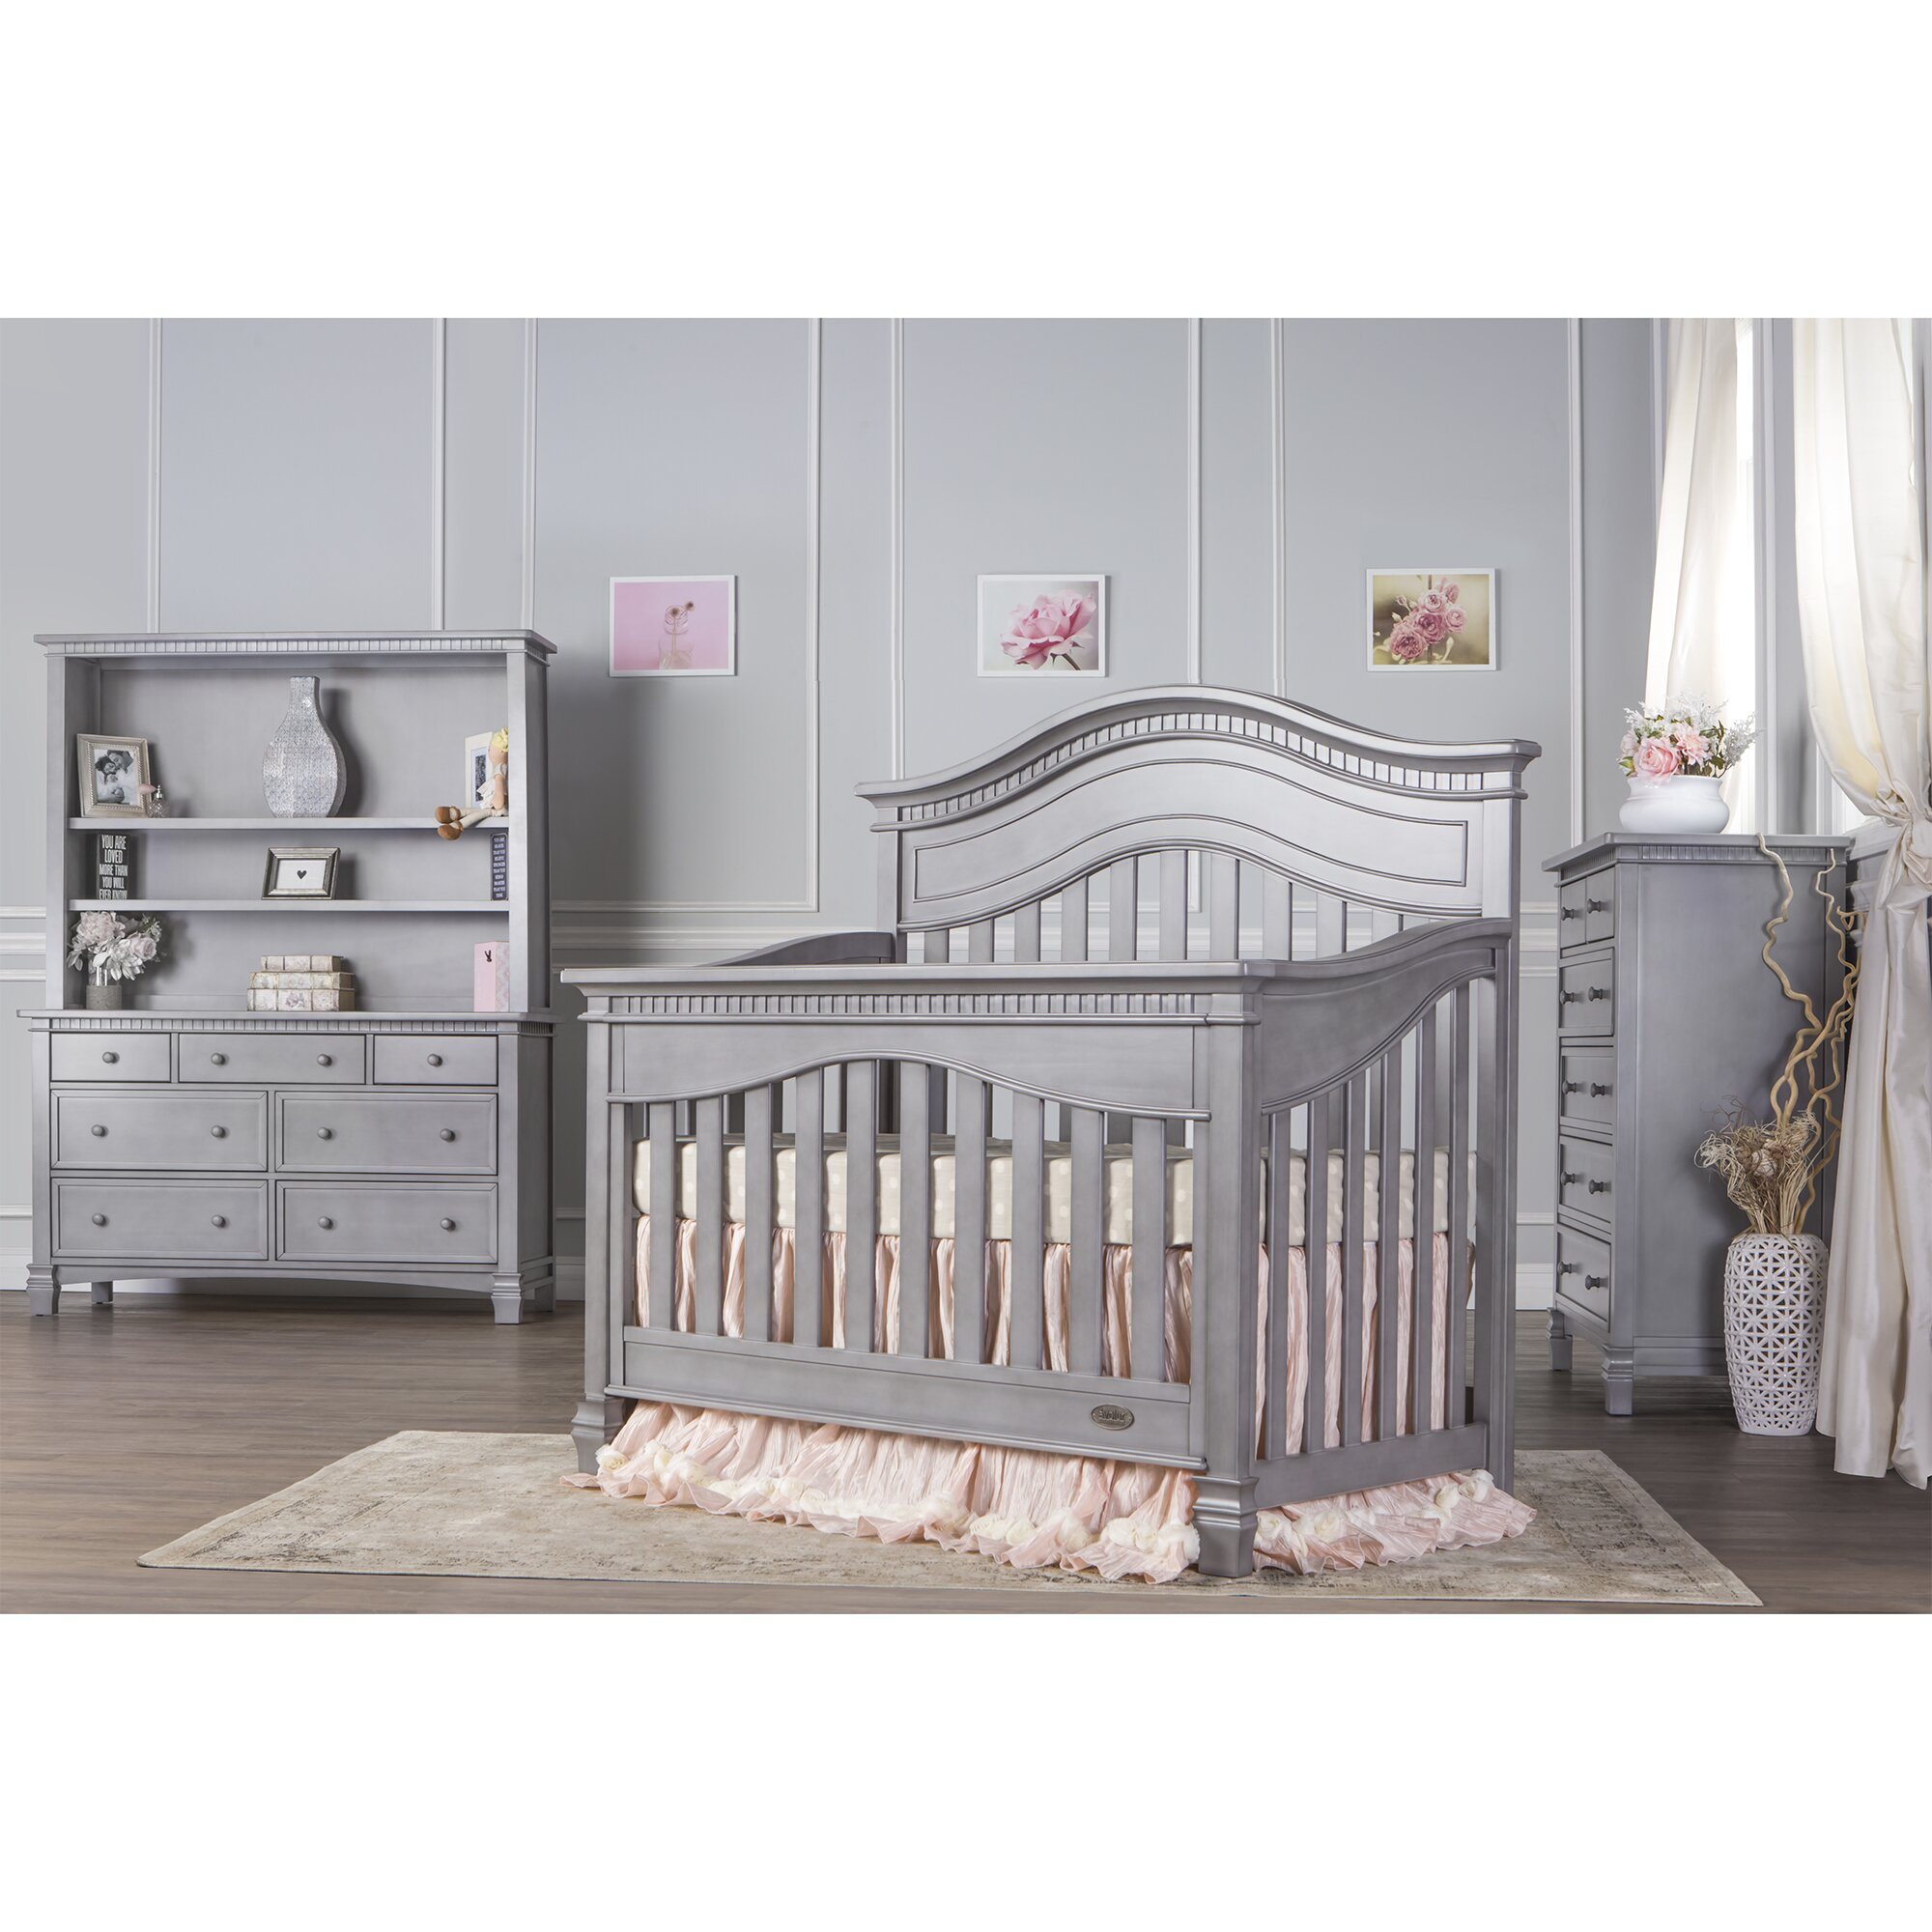 Baby cribs regulations canada - Evolur Cheyenne 5 In 1 Convertible Crib